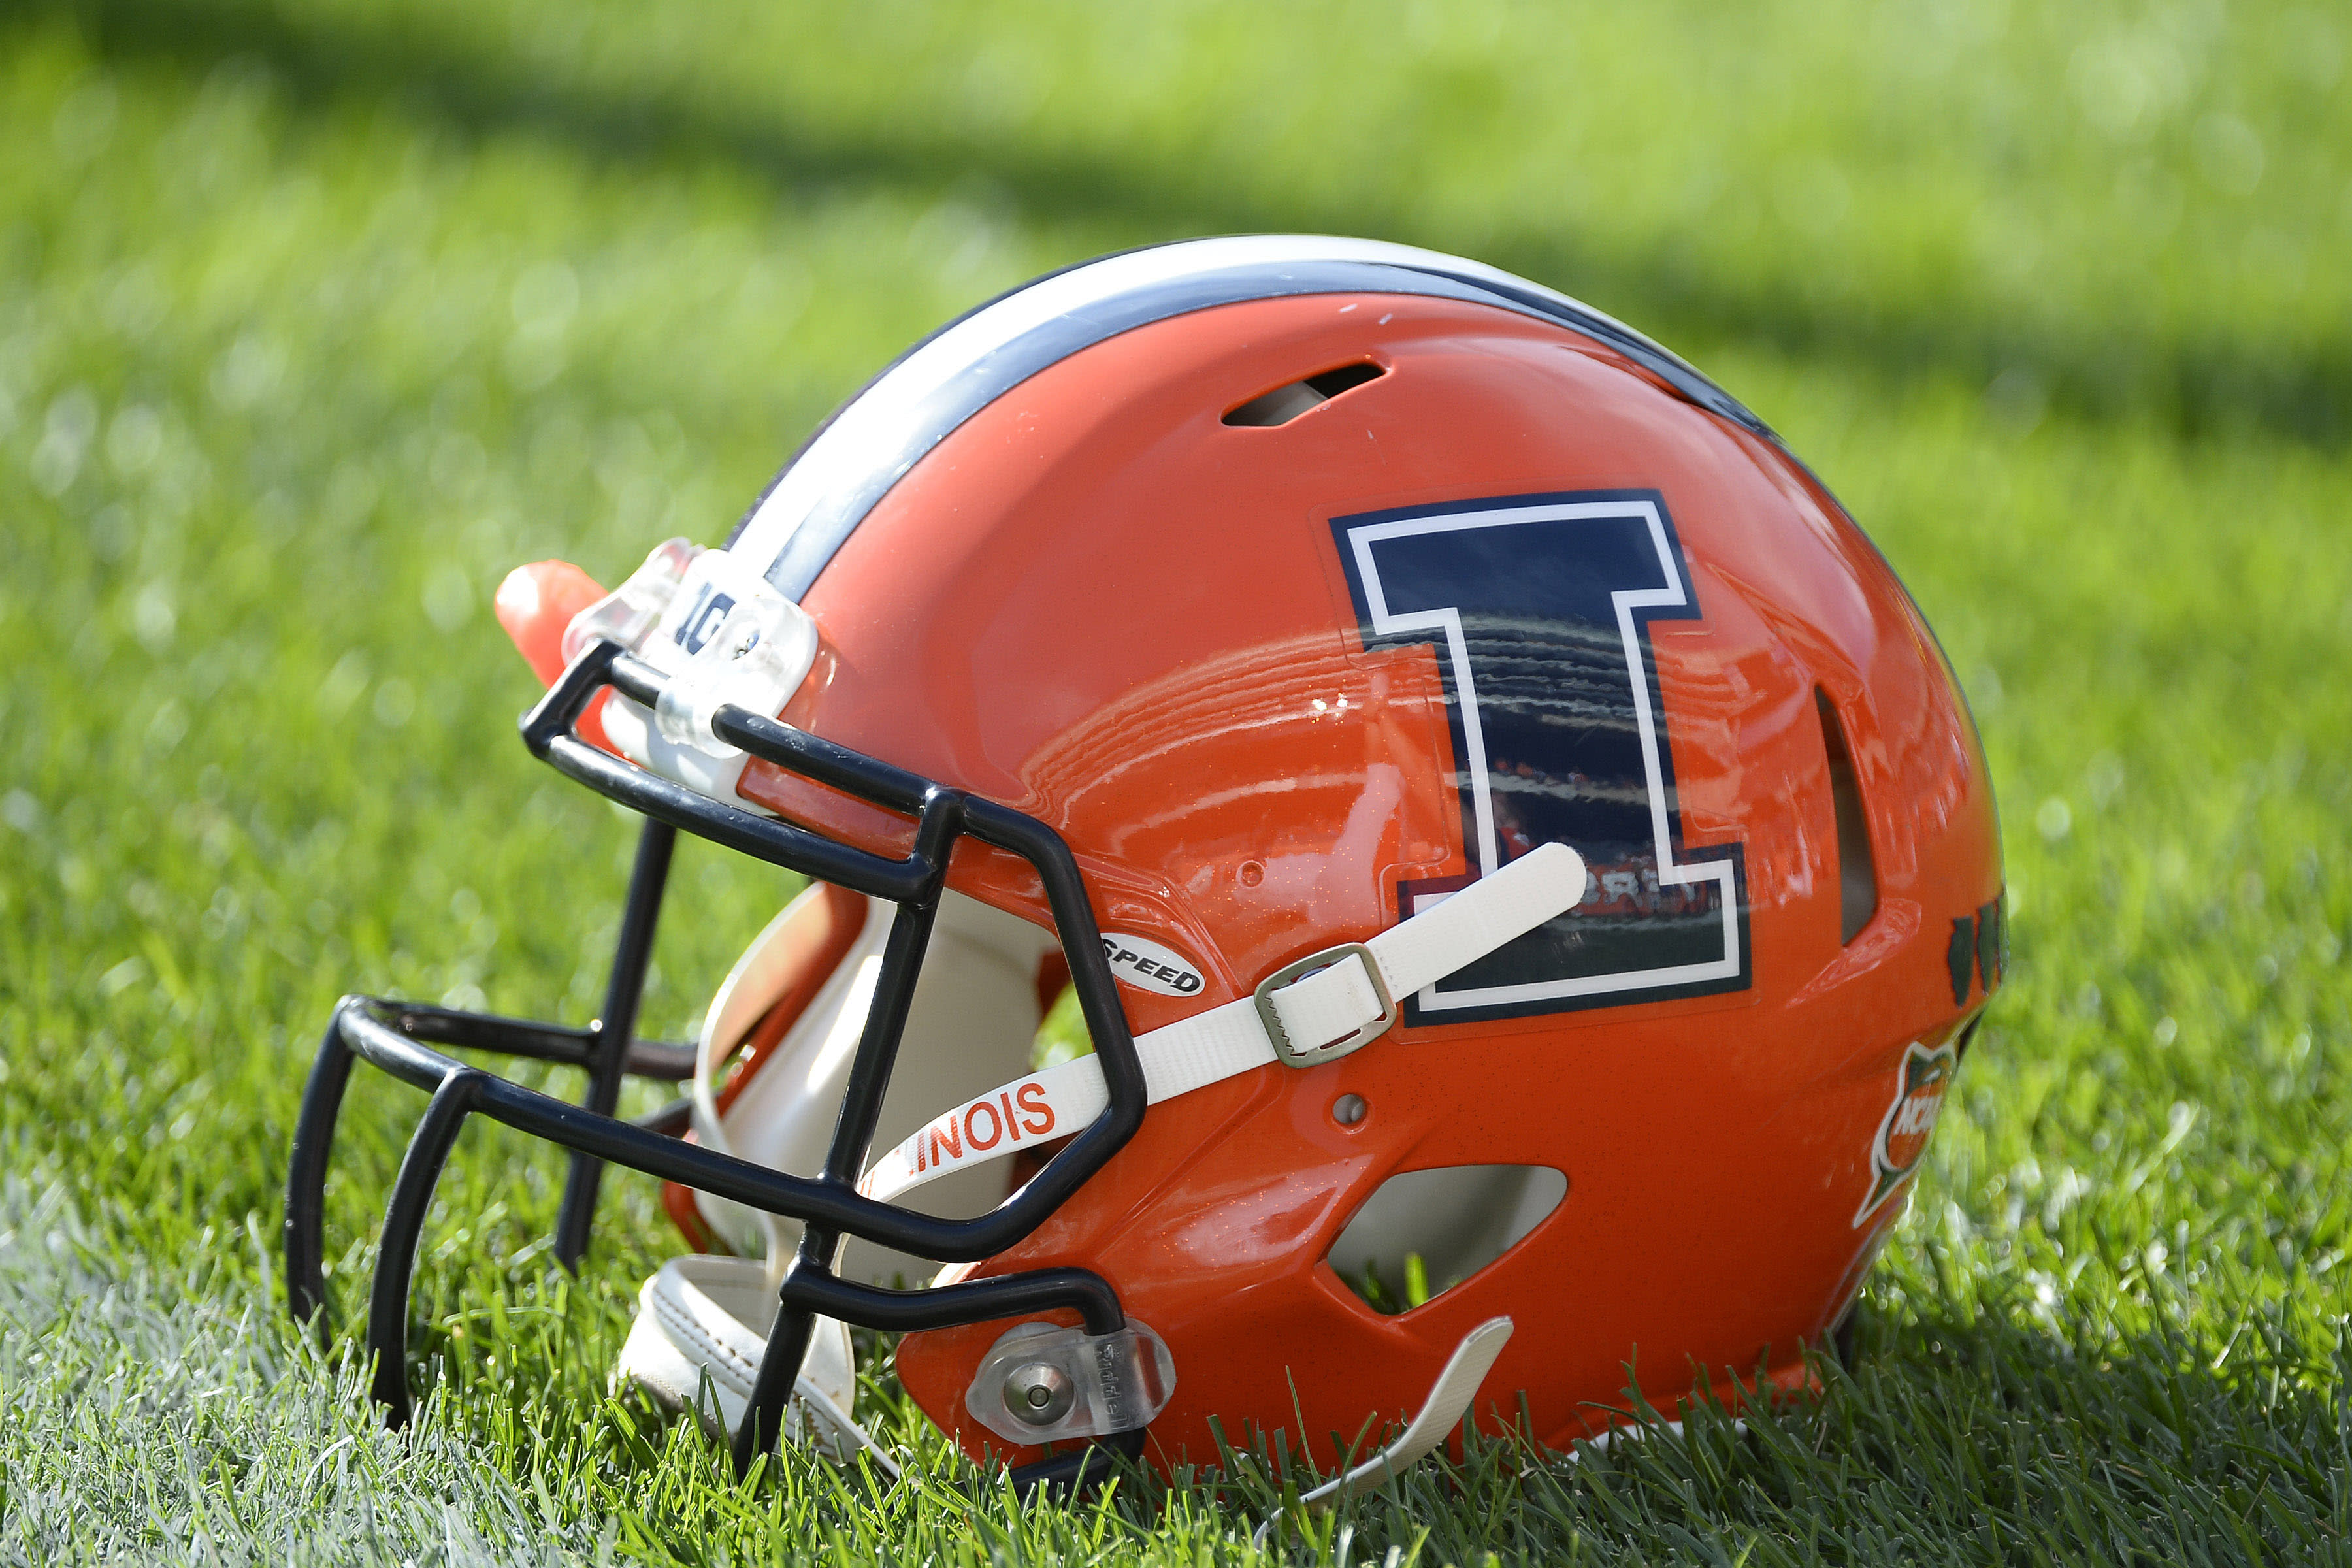 Illinois staffer Ryan Cubit sentenced to two years' probation for DUI